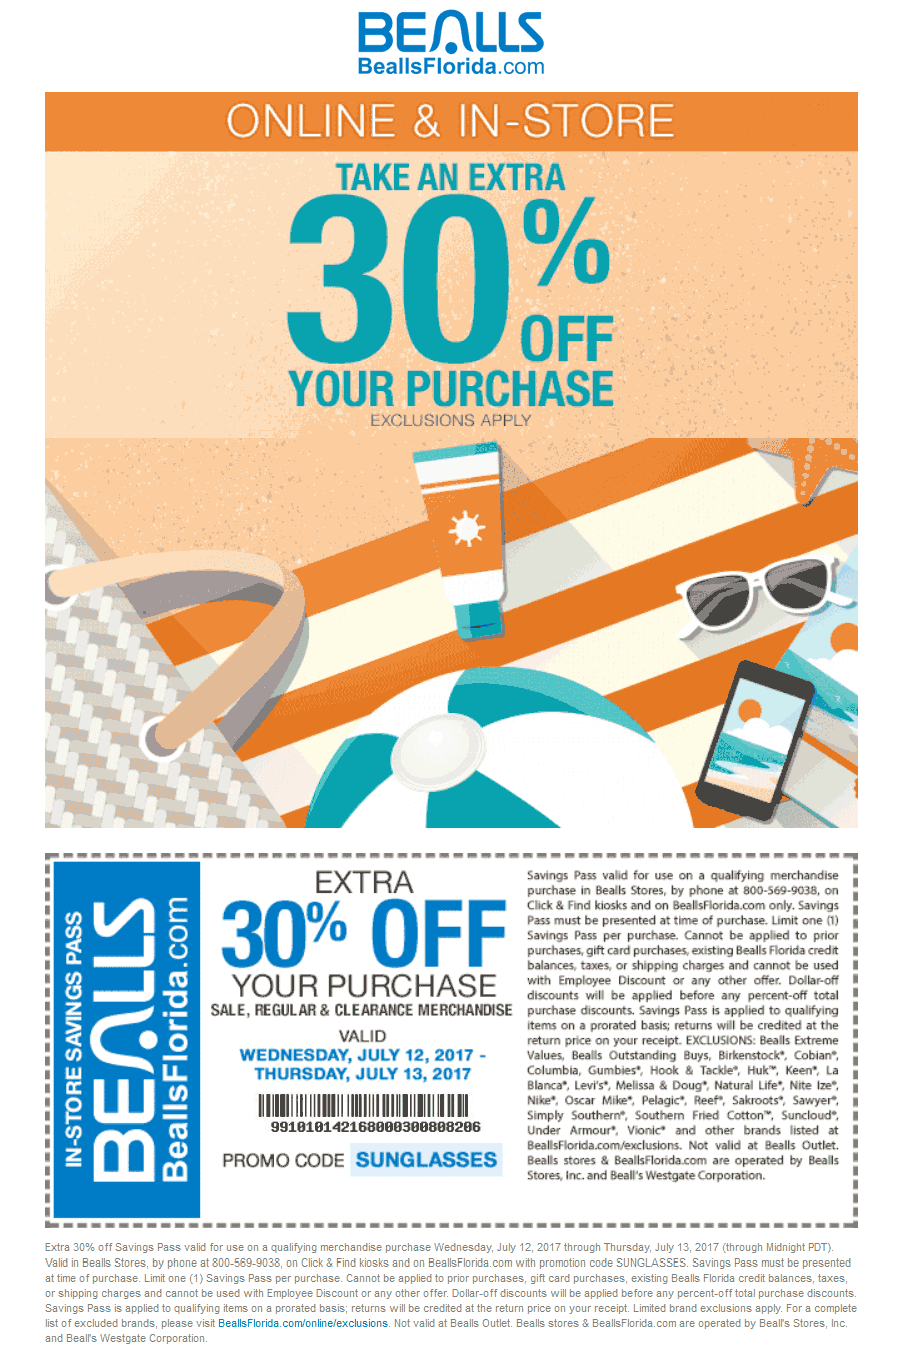 Bealls Coupon September 2018 Extra 30% off today at Bealls, or online via promo code SUNGLASSES